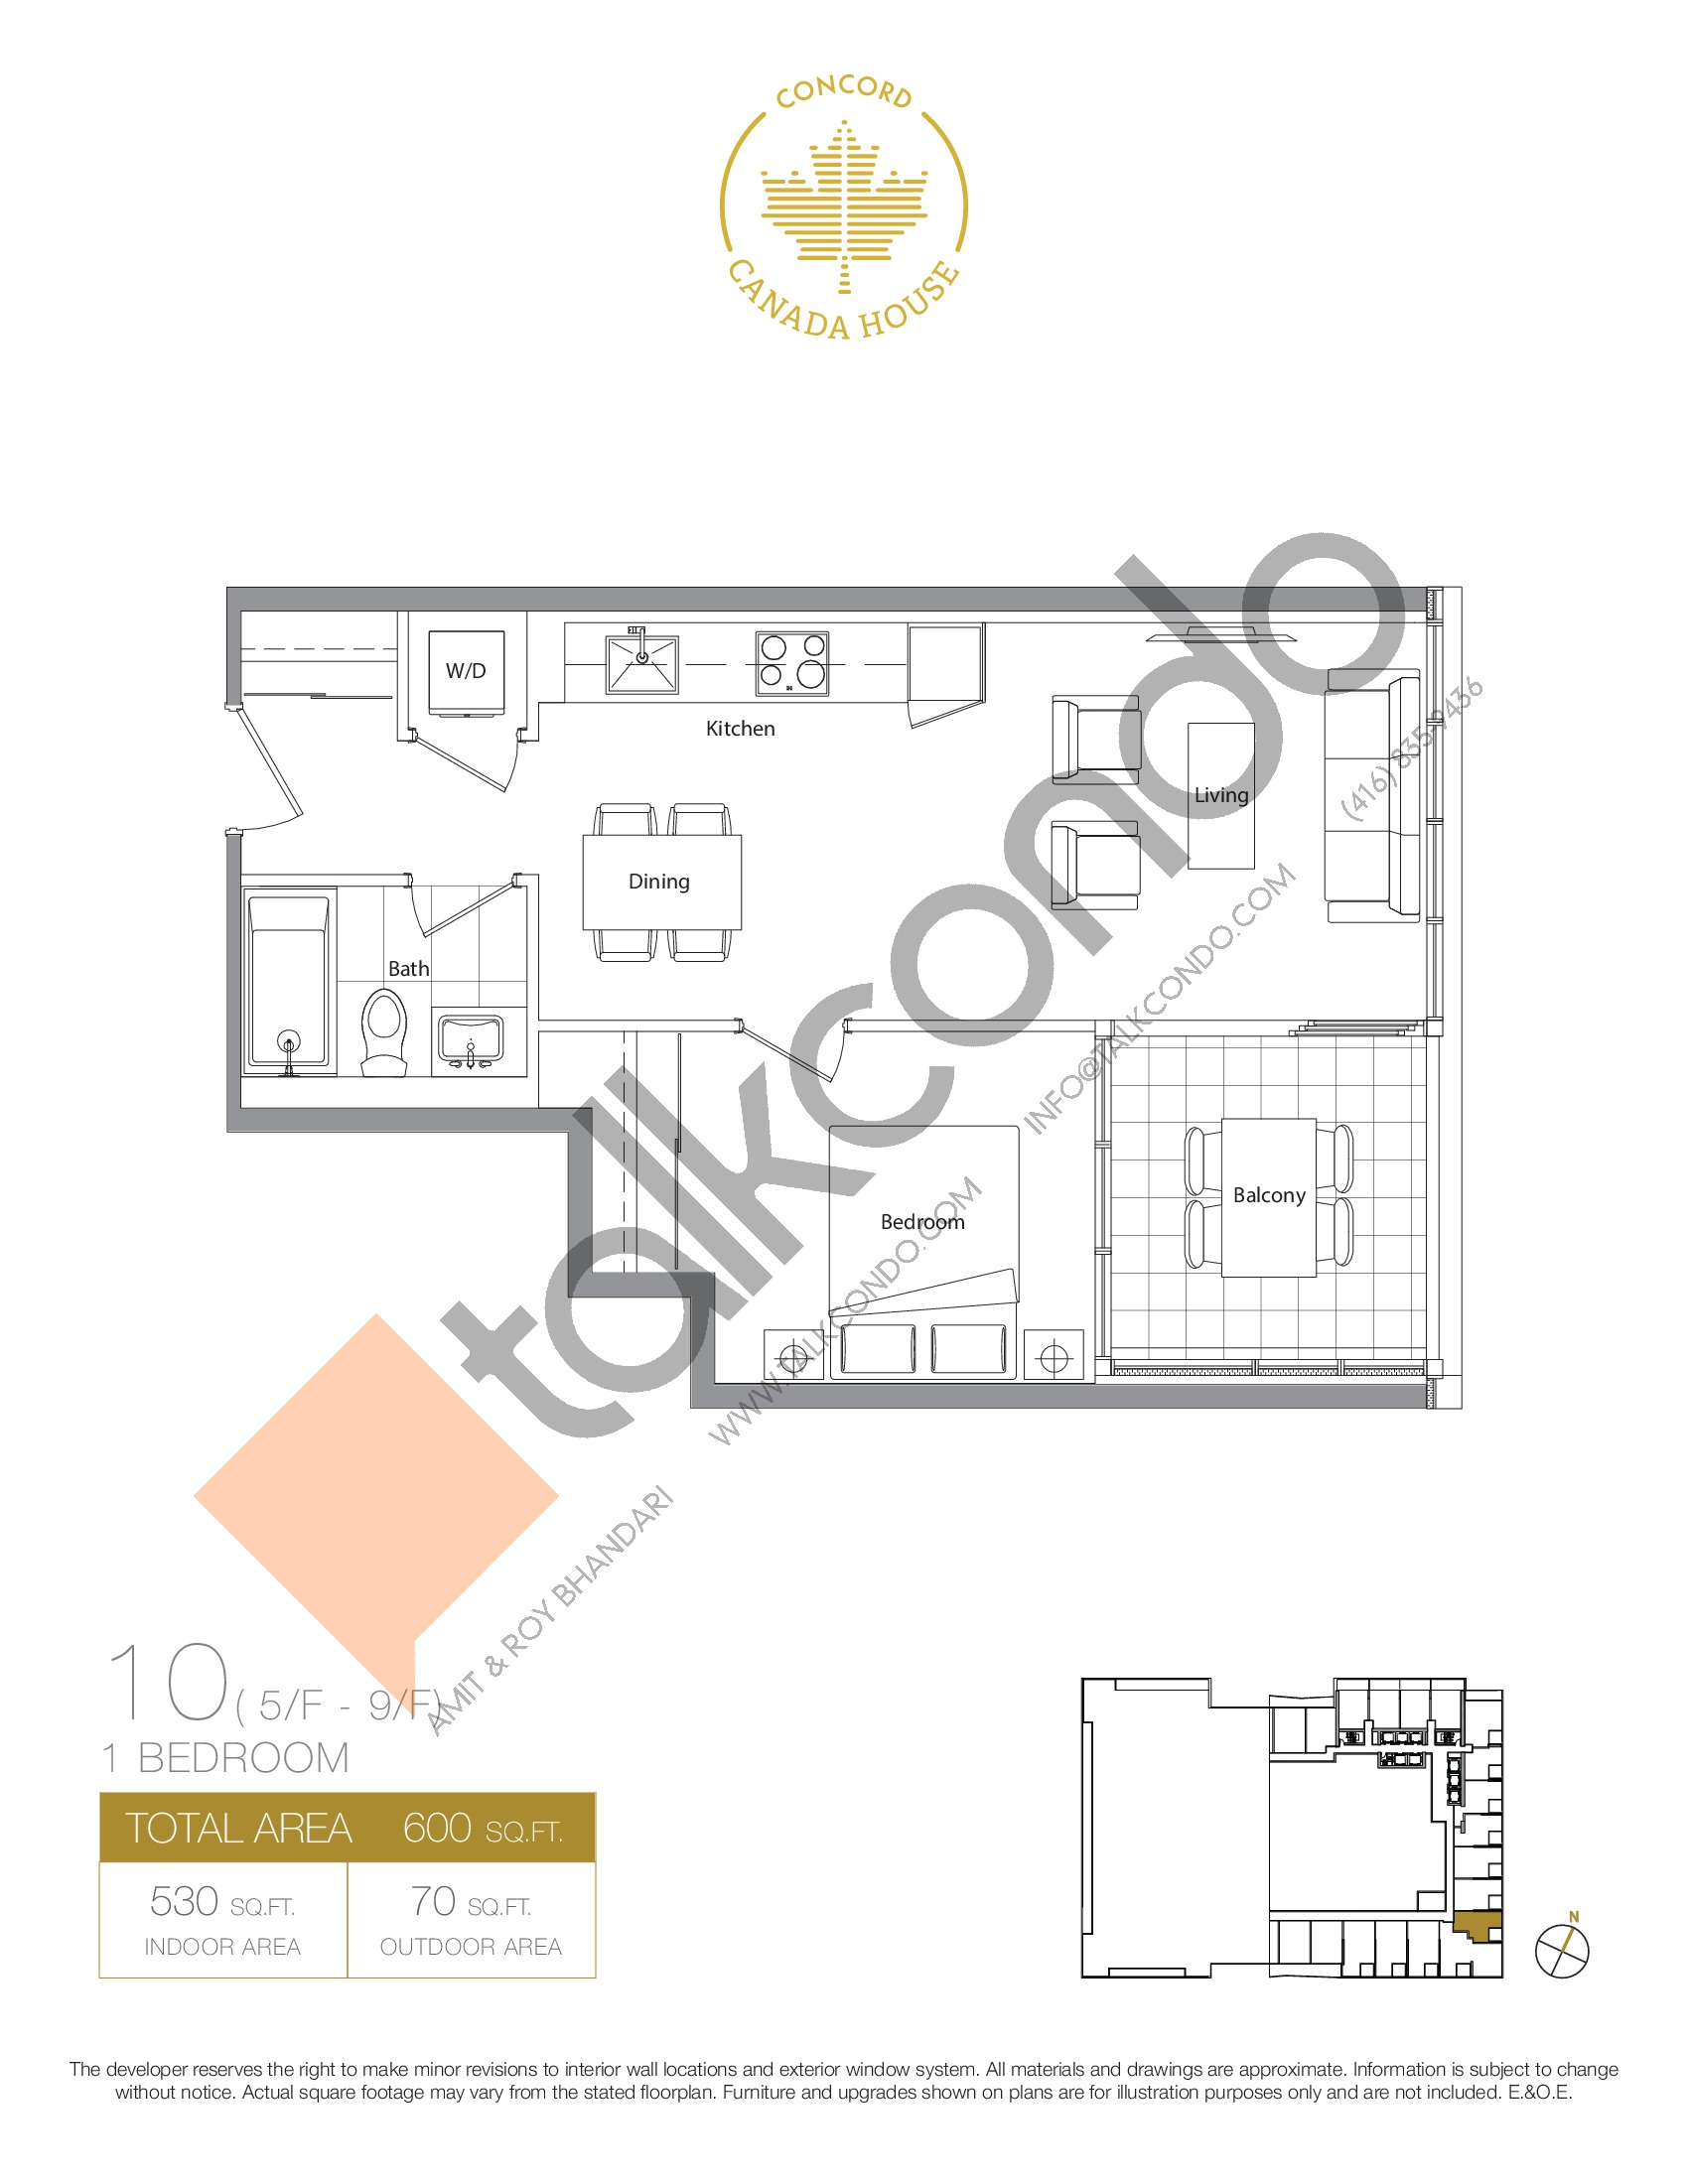 10 - West Tower Floor Plan at Concord Canada House Condos - 530 sq.ft